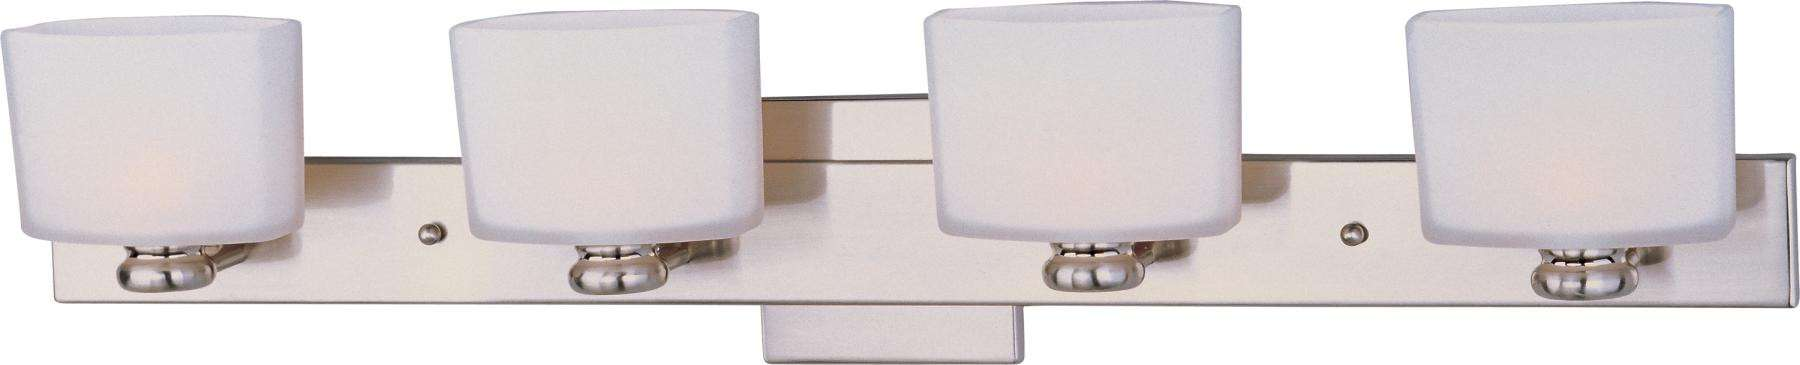 Maxim 9004SWSN Essence 4-Light Bath Vanity in Satin Nickel with Satin White glass.